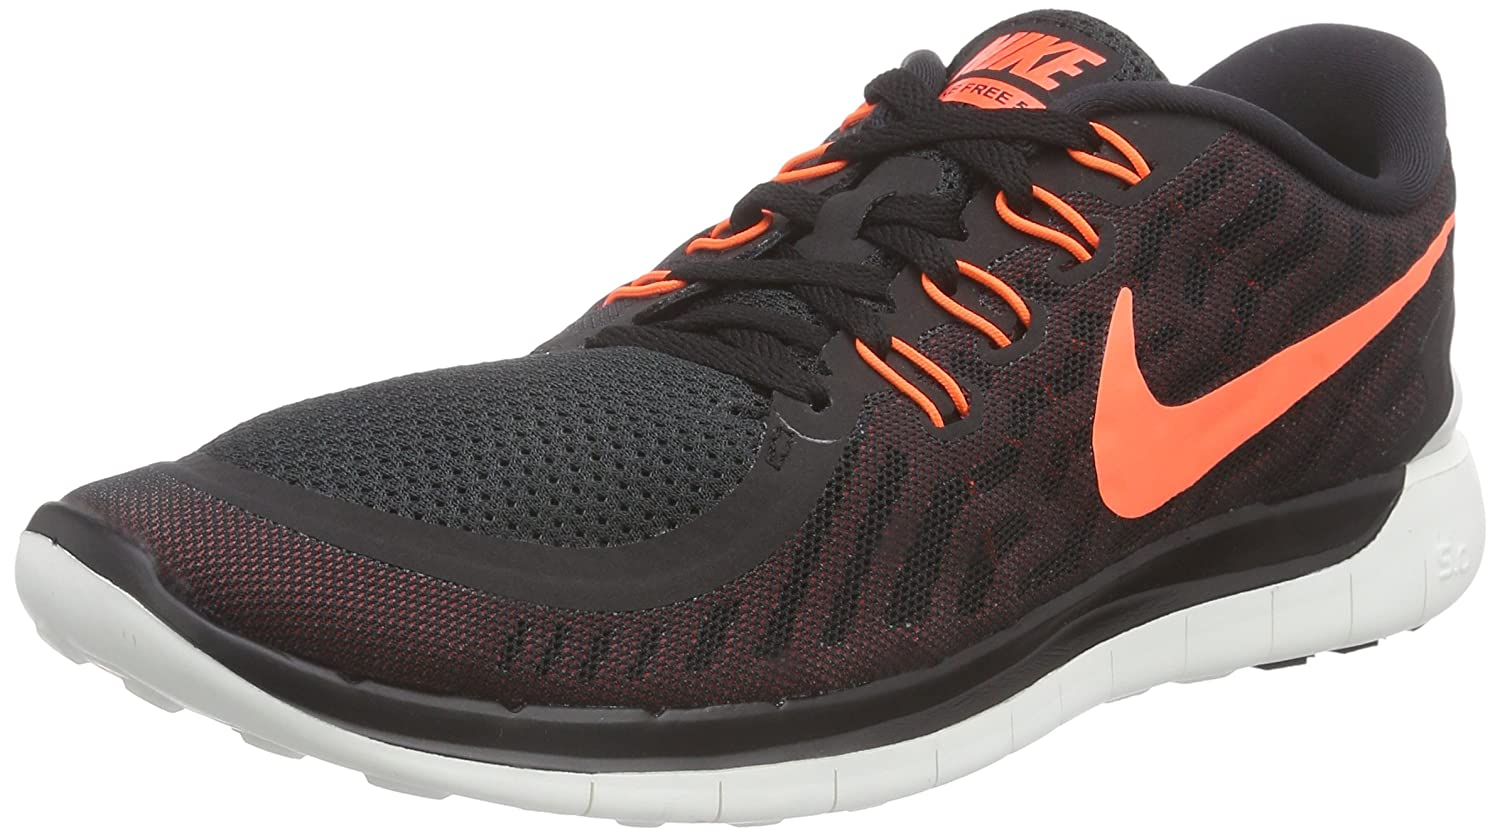 hot sale online 6916d 573c7 Amazon.com   Nike Men s Free 5.0 Running Shoe   Road Running